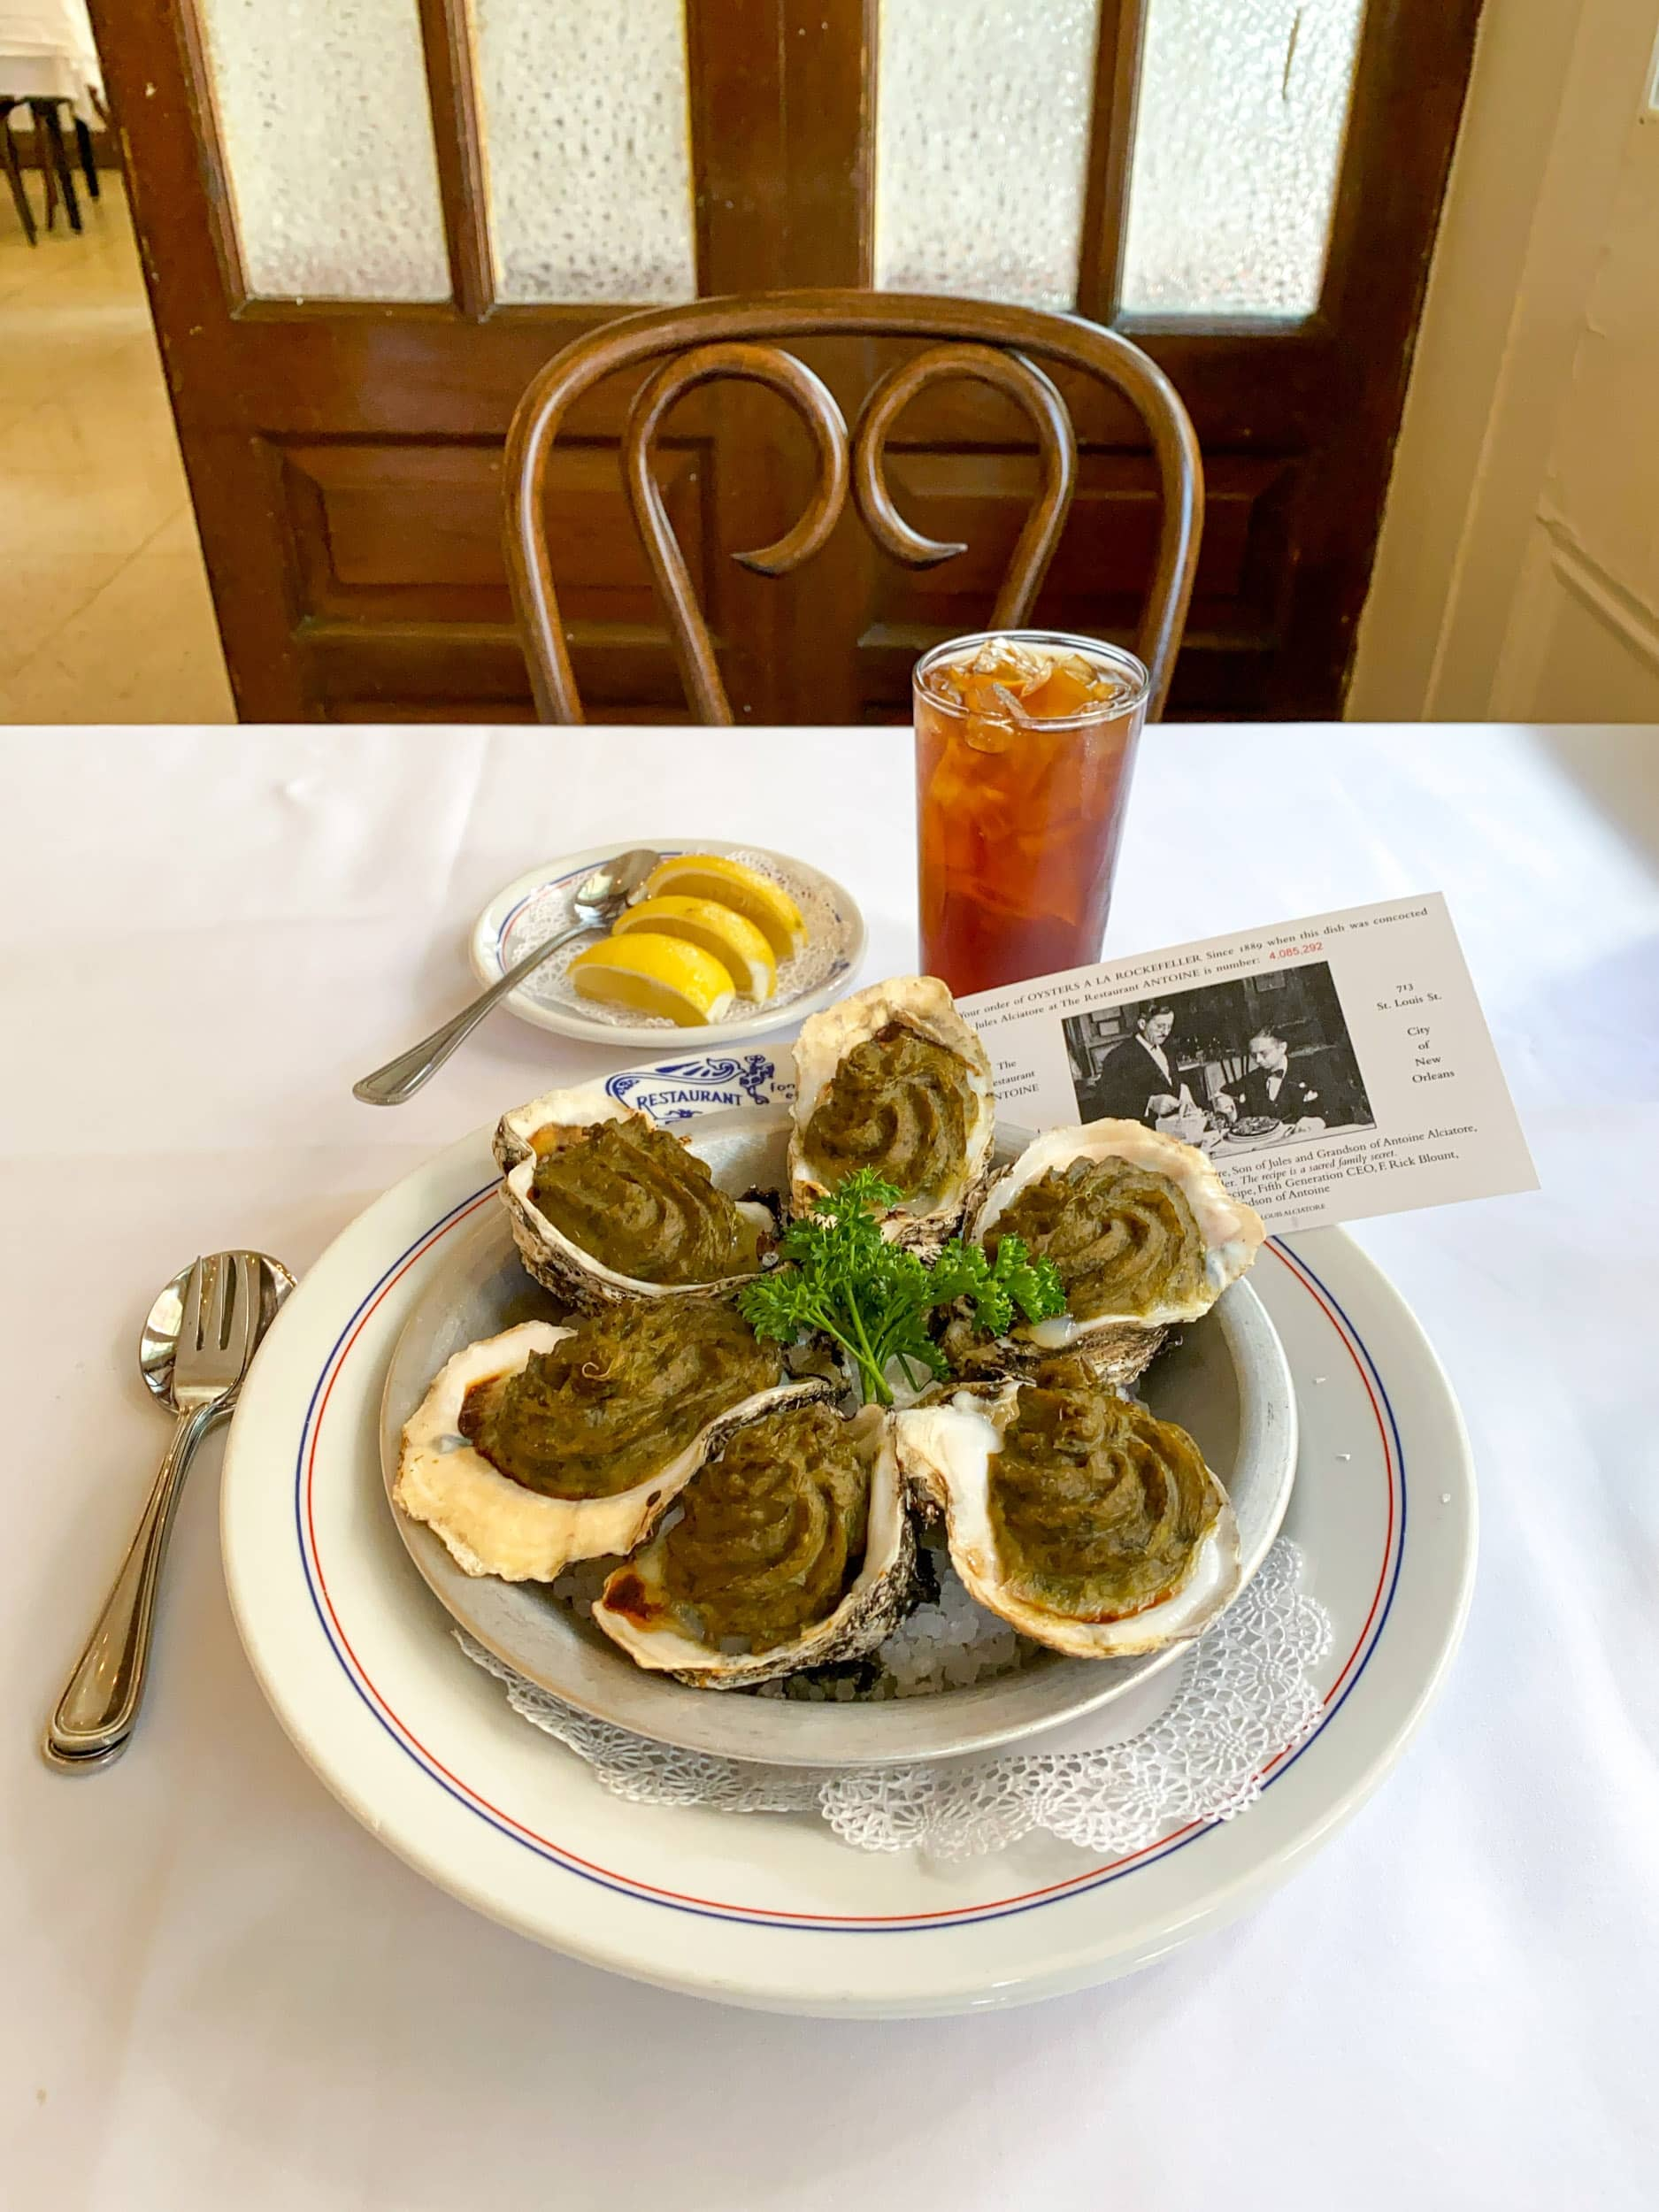 Oyster's Rockefeller at Antoine's Restaurant in the French Quarter